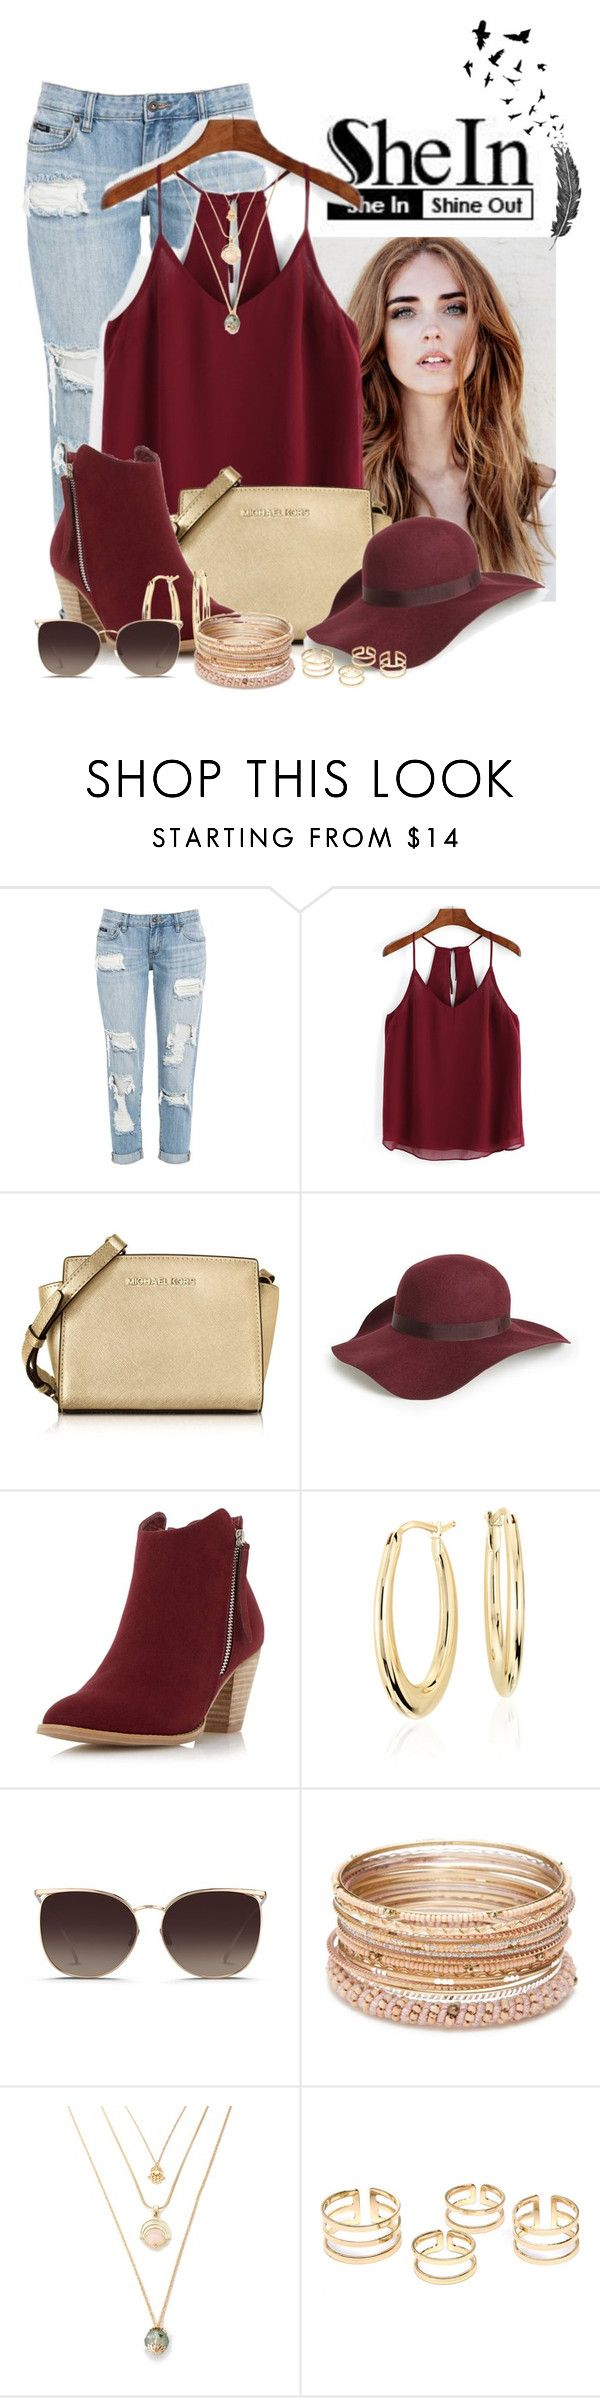 """""""Chiffon Cami Top - SheIn"""" by natsucool ❤ liked on Polyvore featuring Michael Kors, Topshop, Dorothy Perkins, Blue Nile, Linda Farrow and Red Camel"""